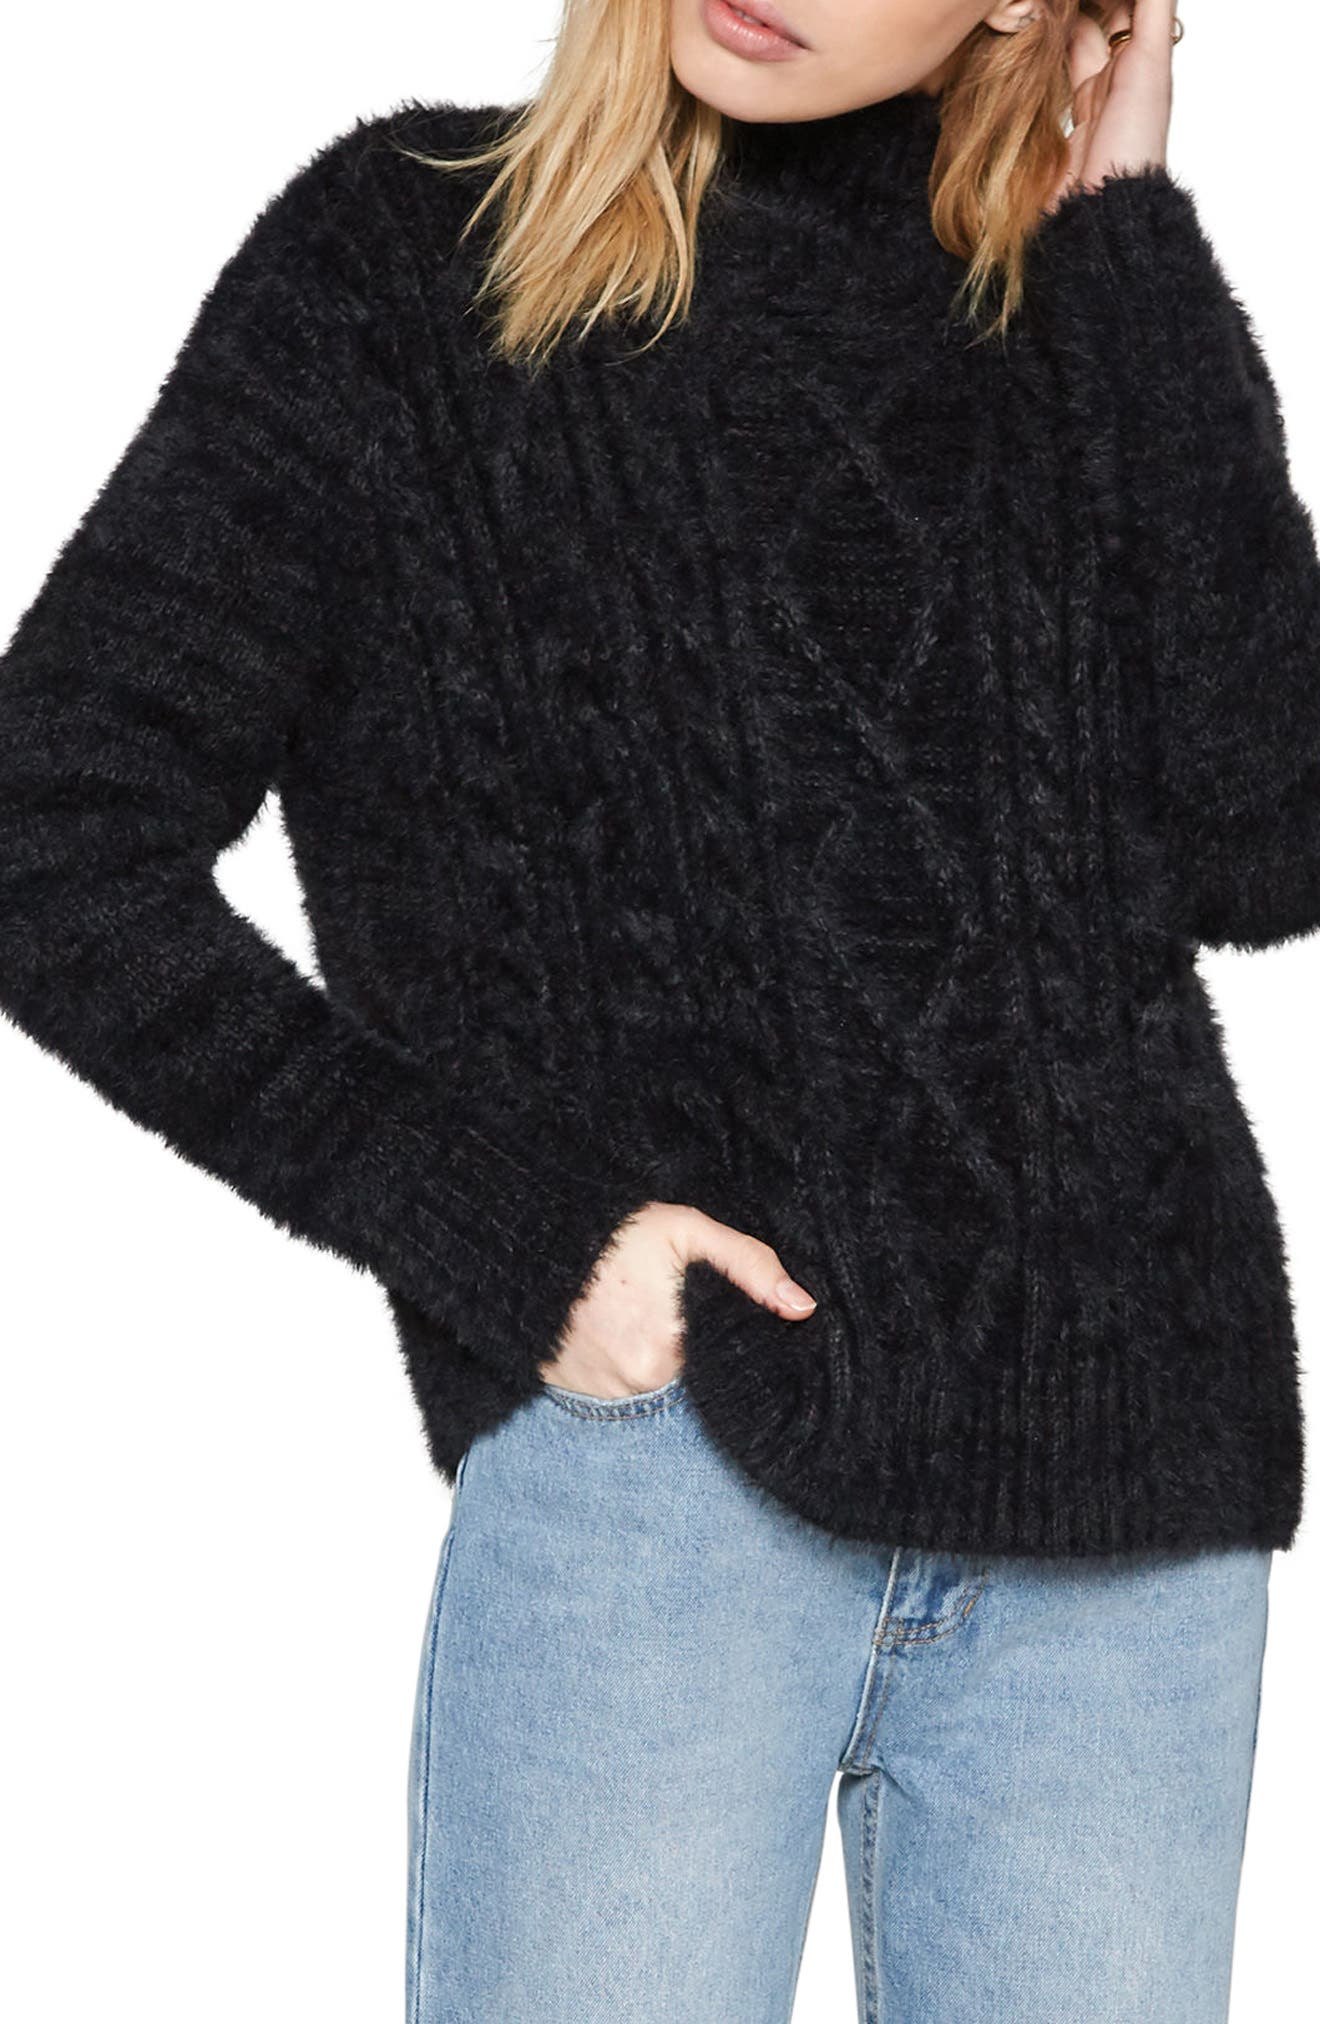 Main Image - Amuse Society Cool Winds Cable Knit Sweater